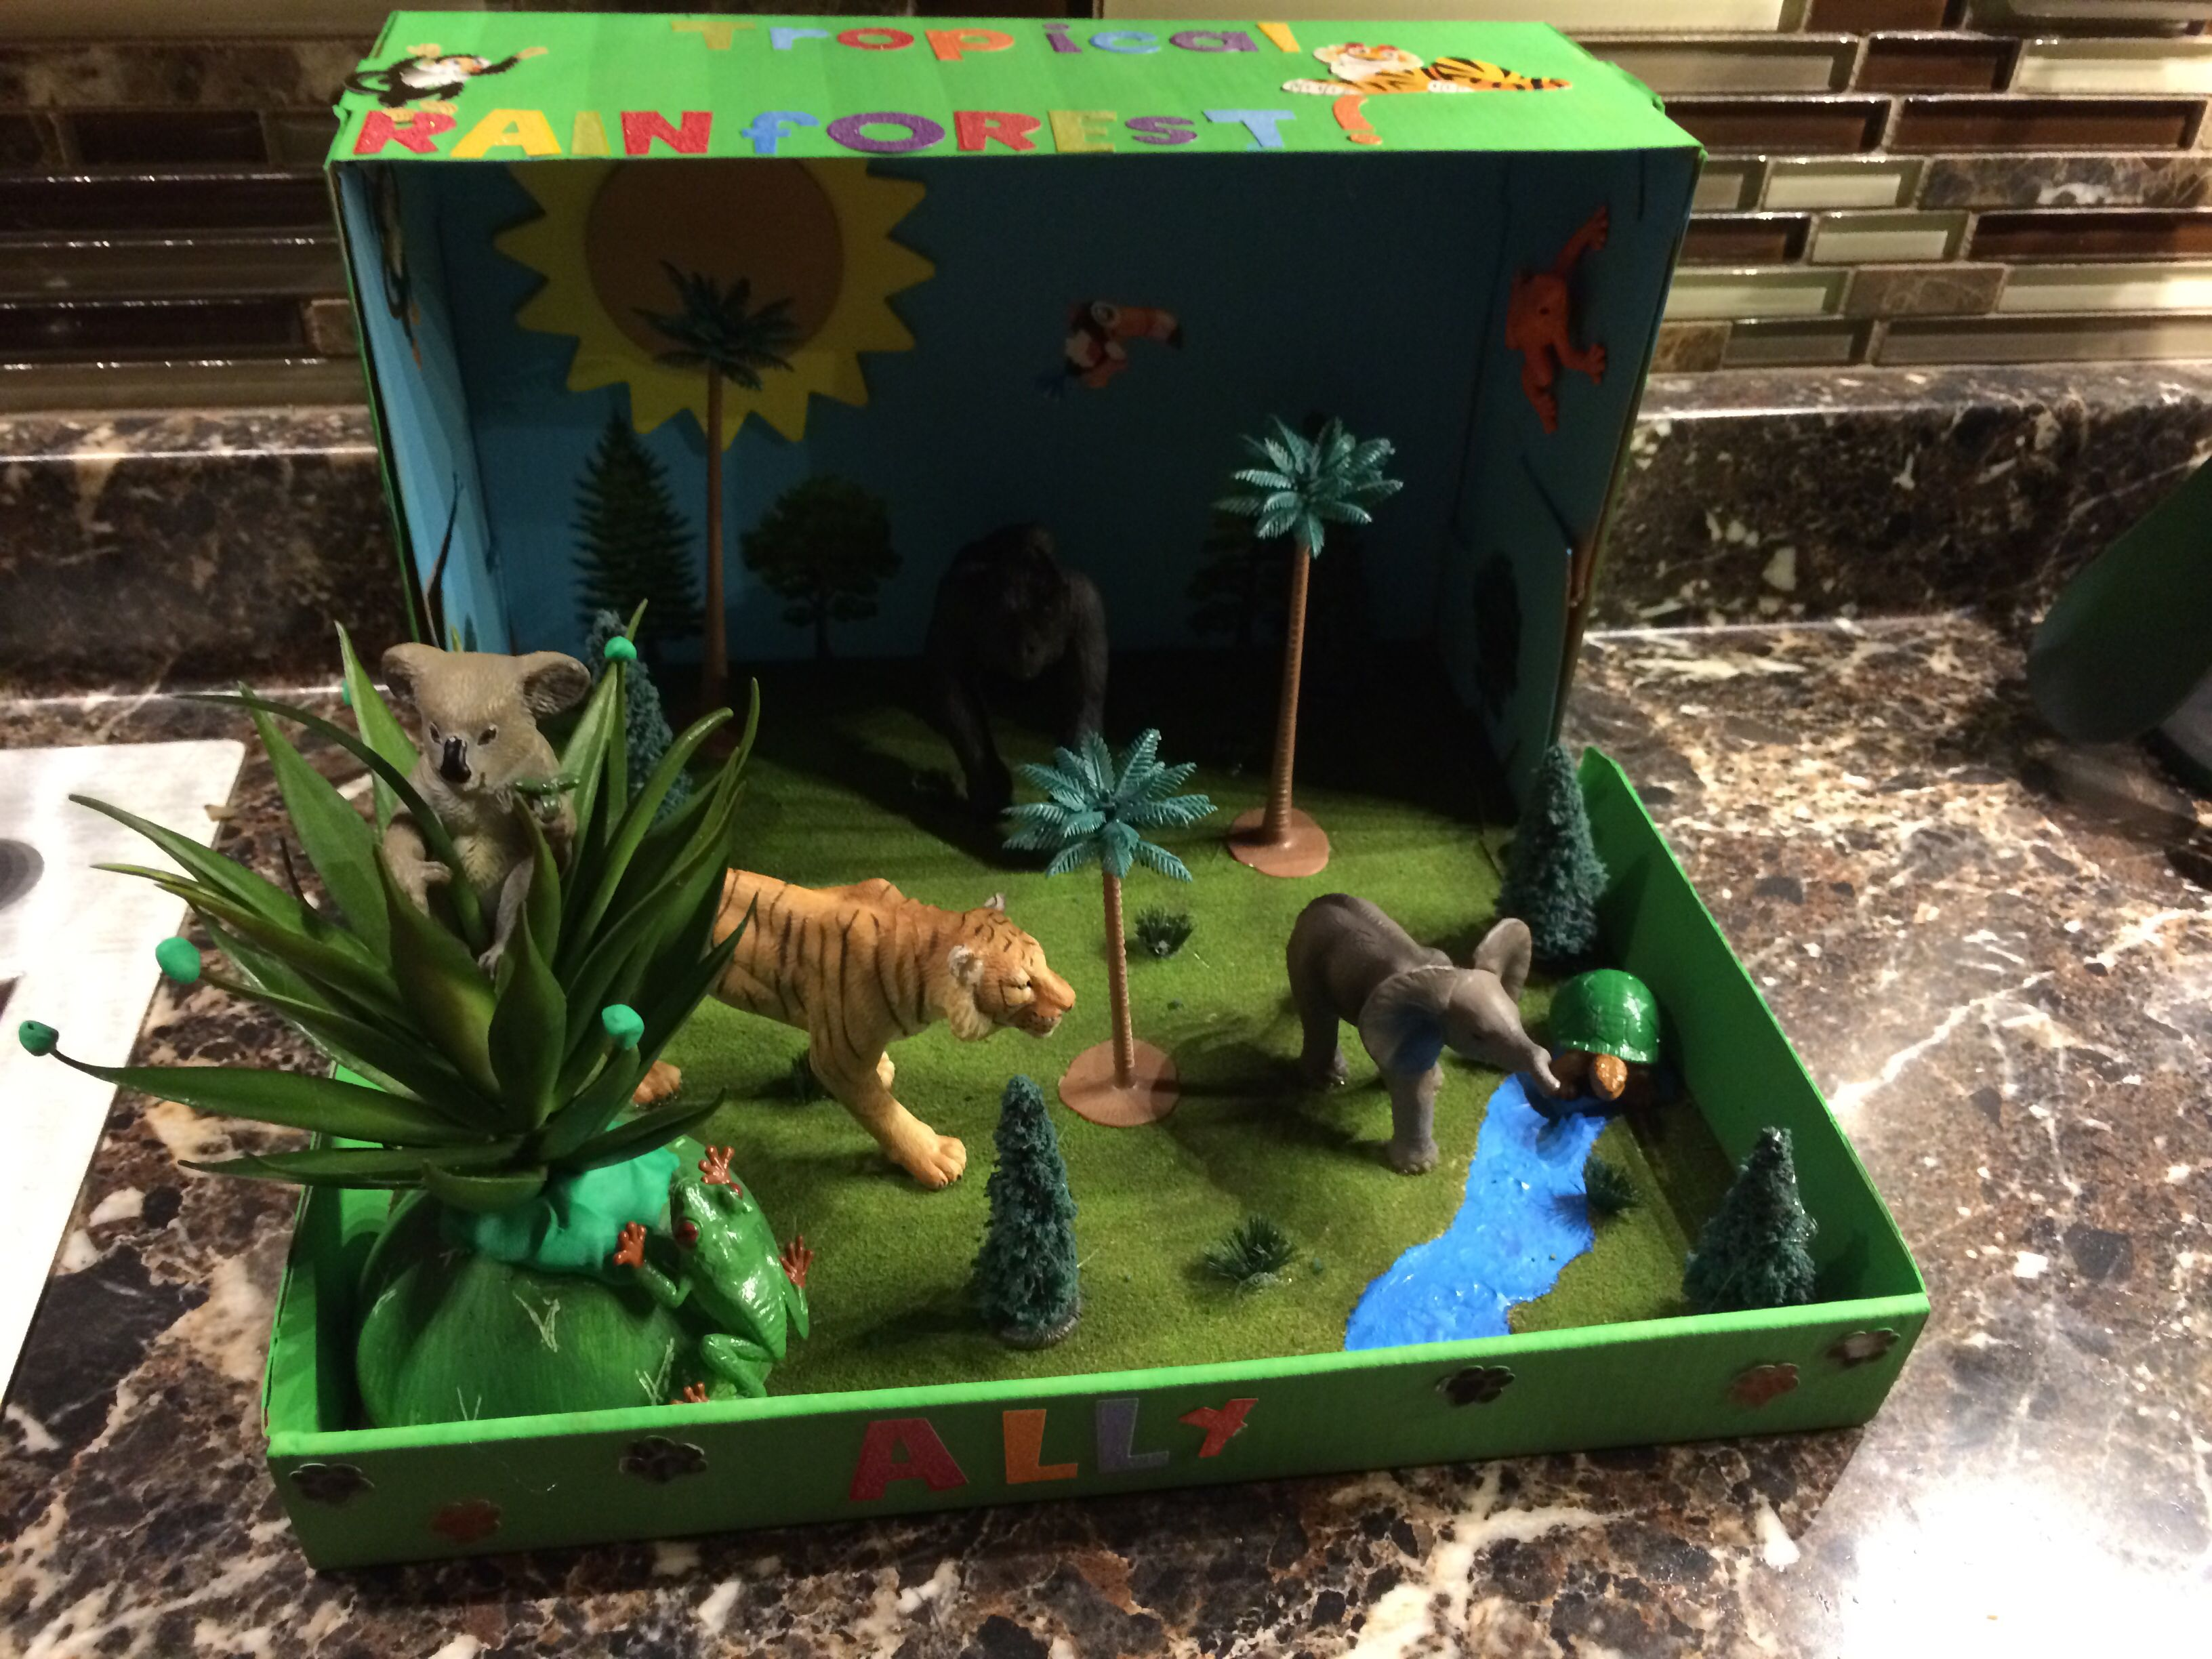 Ally's Tropical rainforest biome project for school